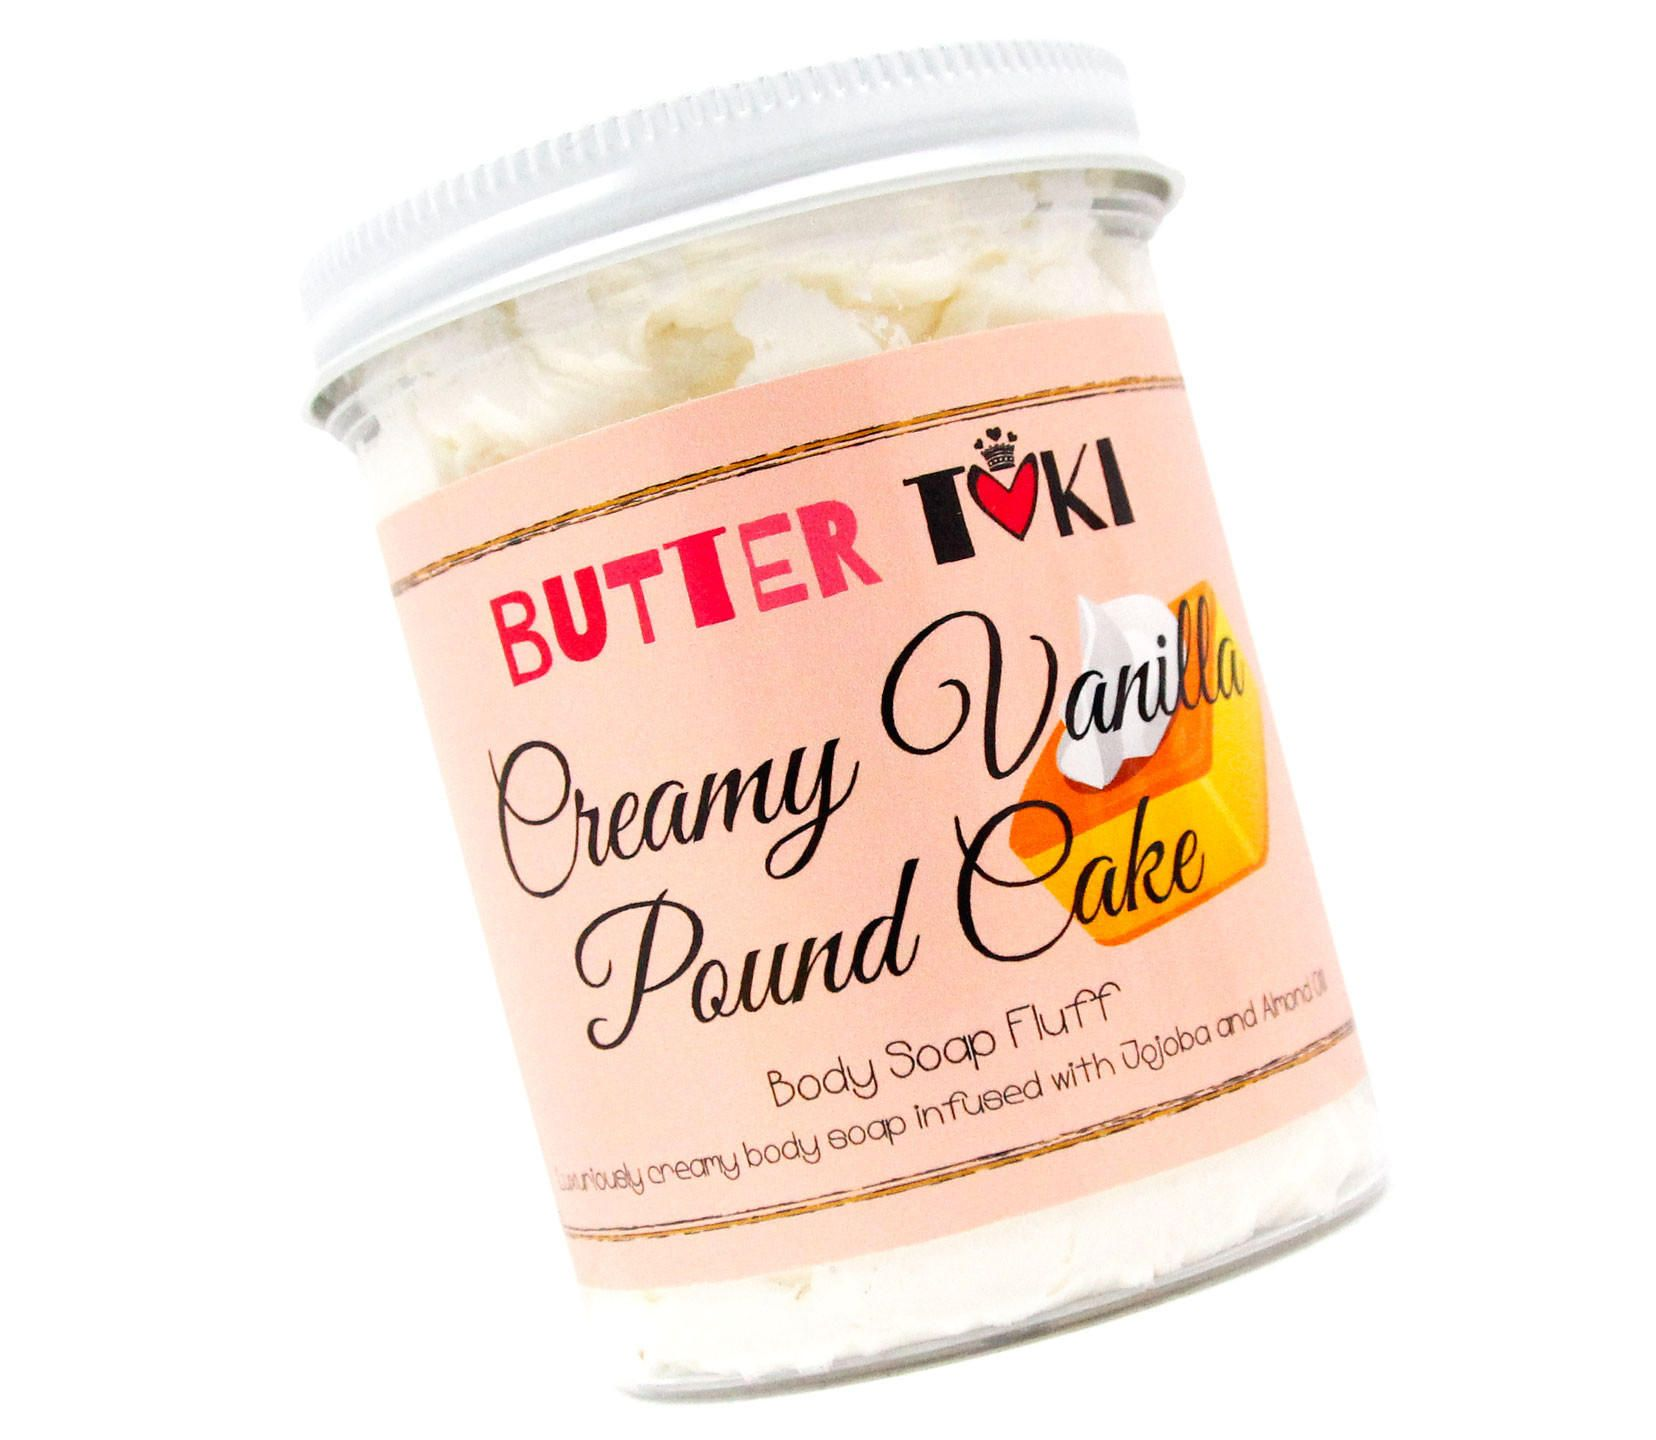 CREAMY VANILLA POUND CAKE Whipped Body Soap Fluff 8oz from 214 N 16th St Ste 104. Saved to Things I want as gifts. #handmade #cake #soap #cakesoap #vanilla.